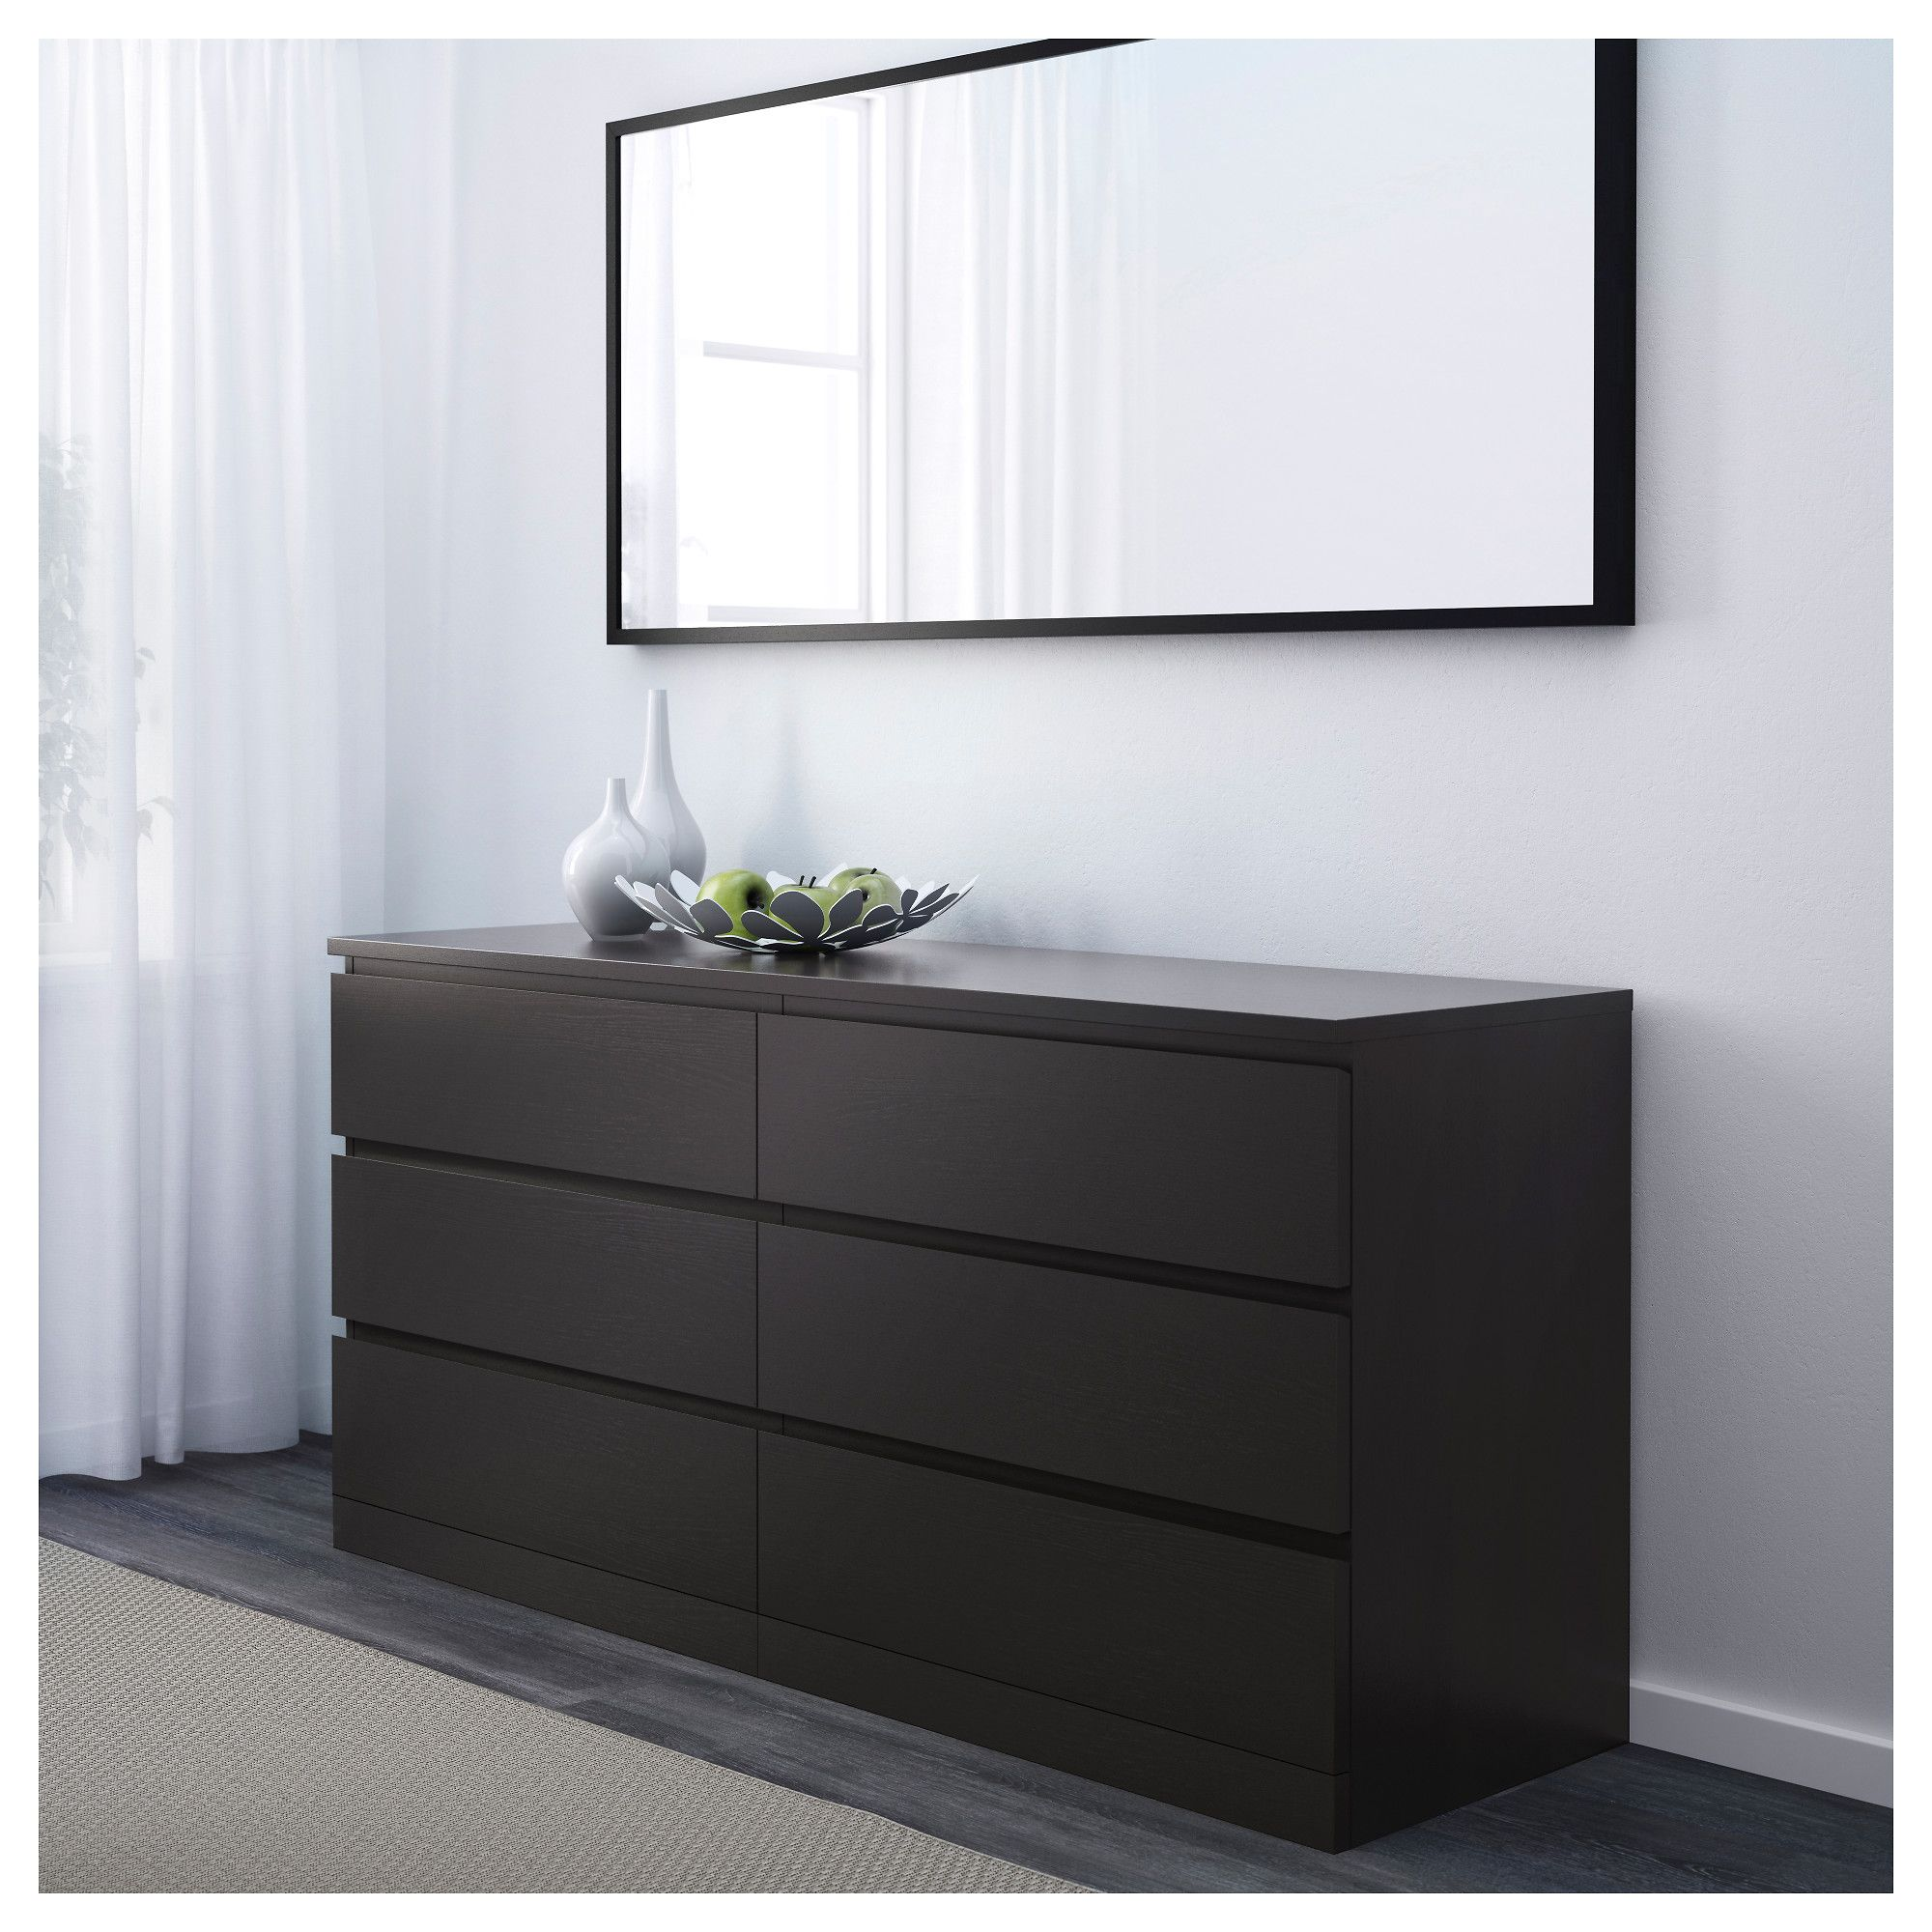 IKEA - MALM 6-drawer dresser black-brown in 2019 | Bedroom ...